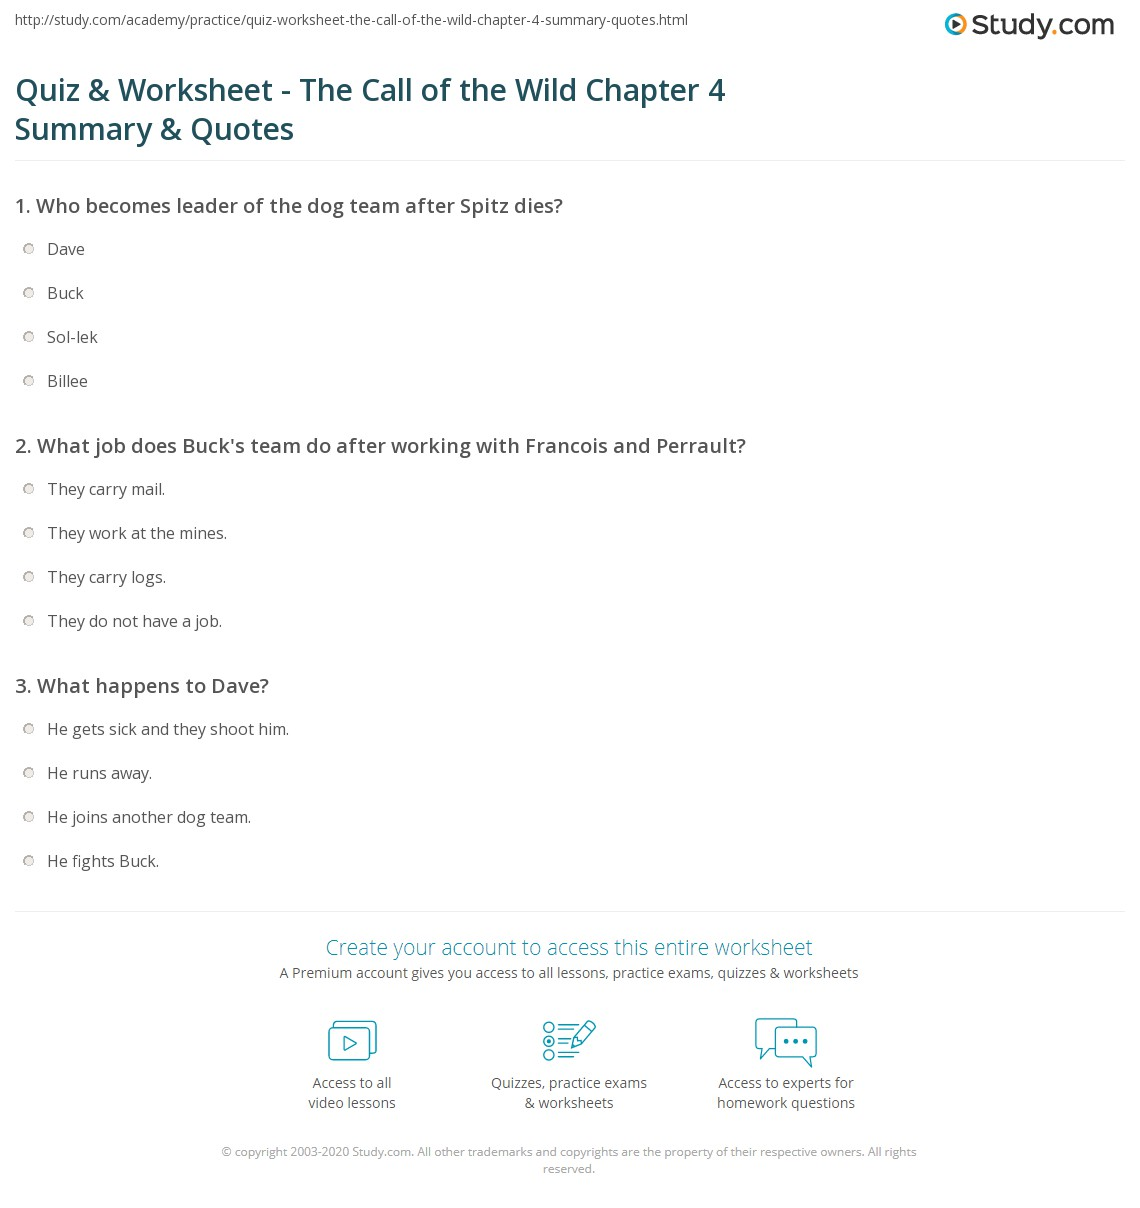 quiz-worksheet-the-call-of-the-wild-chapter-4-summary-quotes Take Away Math Worksheet on sum math worksheet, ice cream math worksheet, menu math worksheet, italian math worksheet, add math worksheet, fish math worksheet, post office math worksheet, pizza math worksheet, spanish math worksheet, rocket math worksheet, french math worksheet,